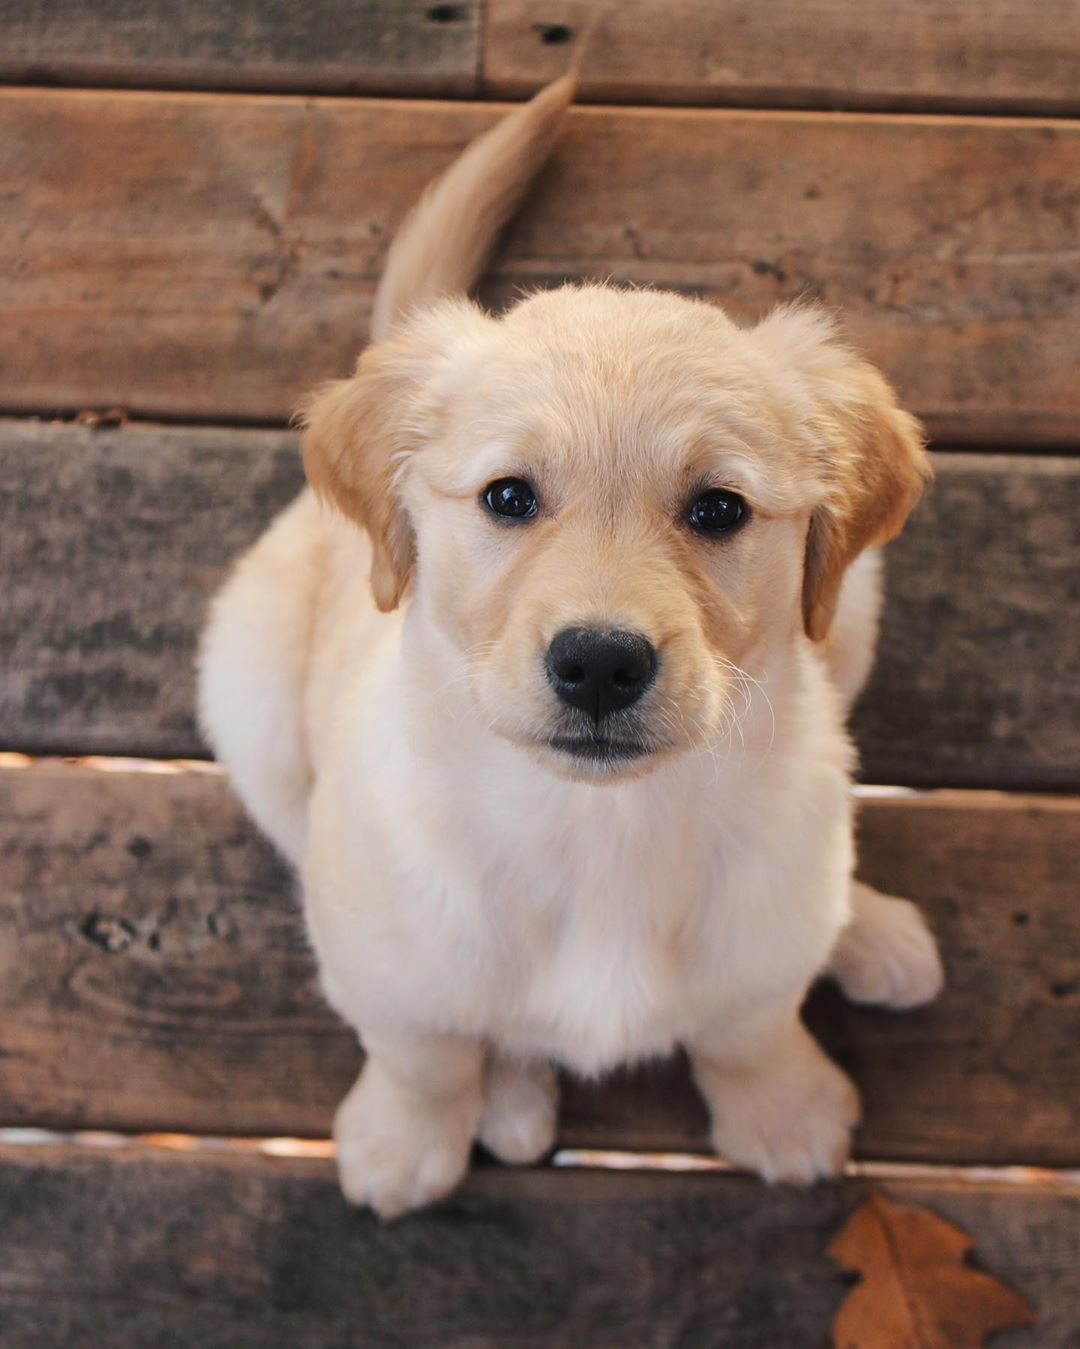 My Hoomans Cant Resist My Puppy Dog Eyes Golden Goldenretriever Petsmart Canada Petsmartcanada Dogs Puppy Dog Eyes Dogs Golden Retriever